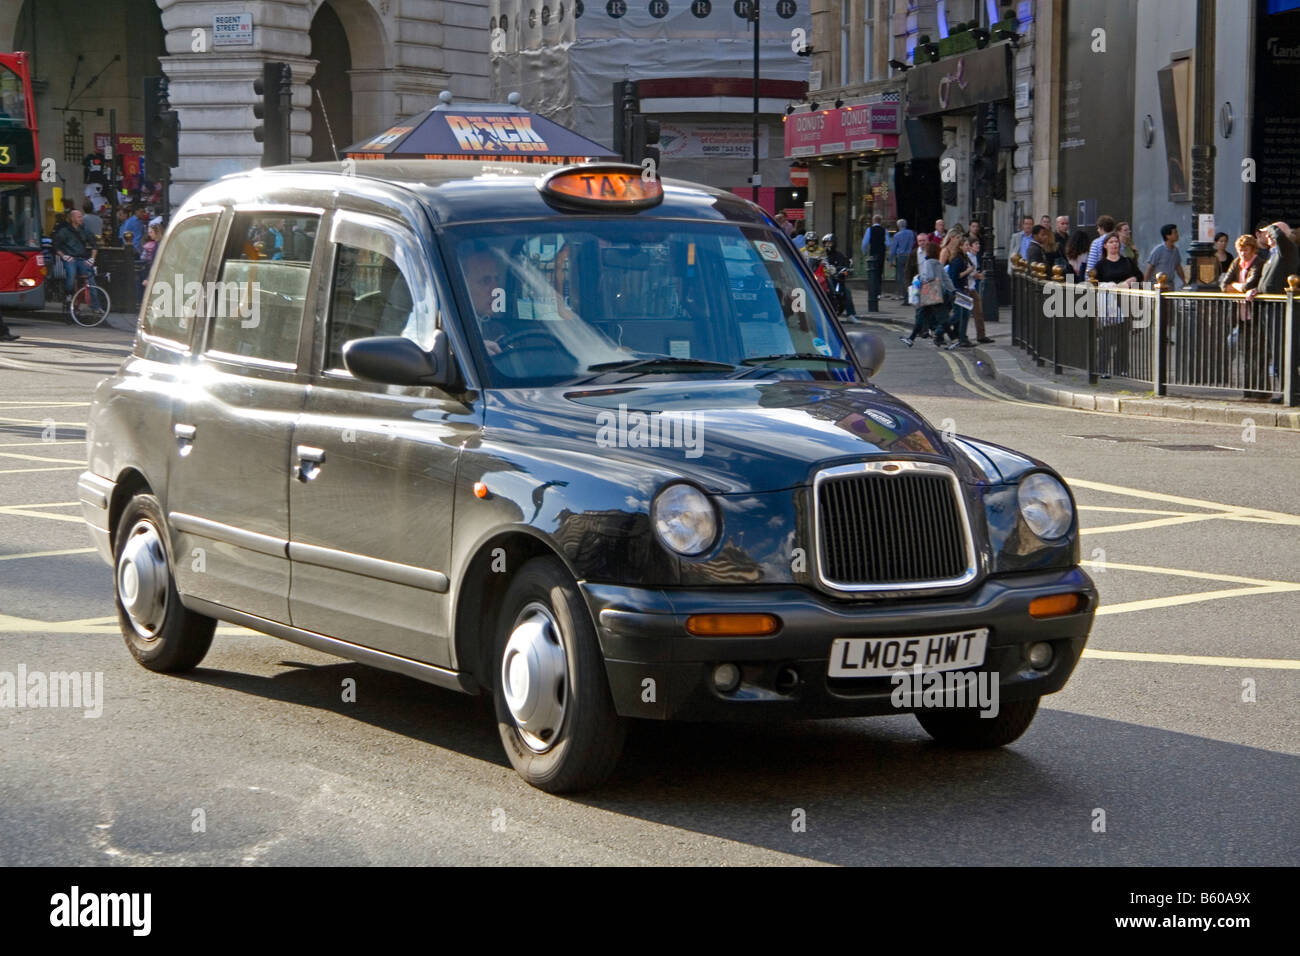 Hackney taxi cab in the city of London England - Stock Image